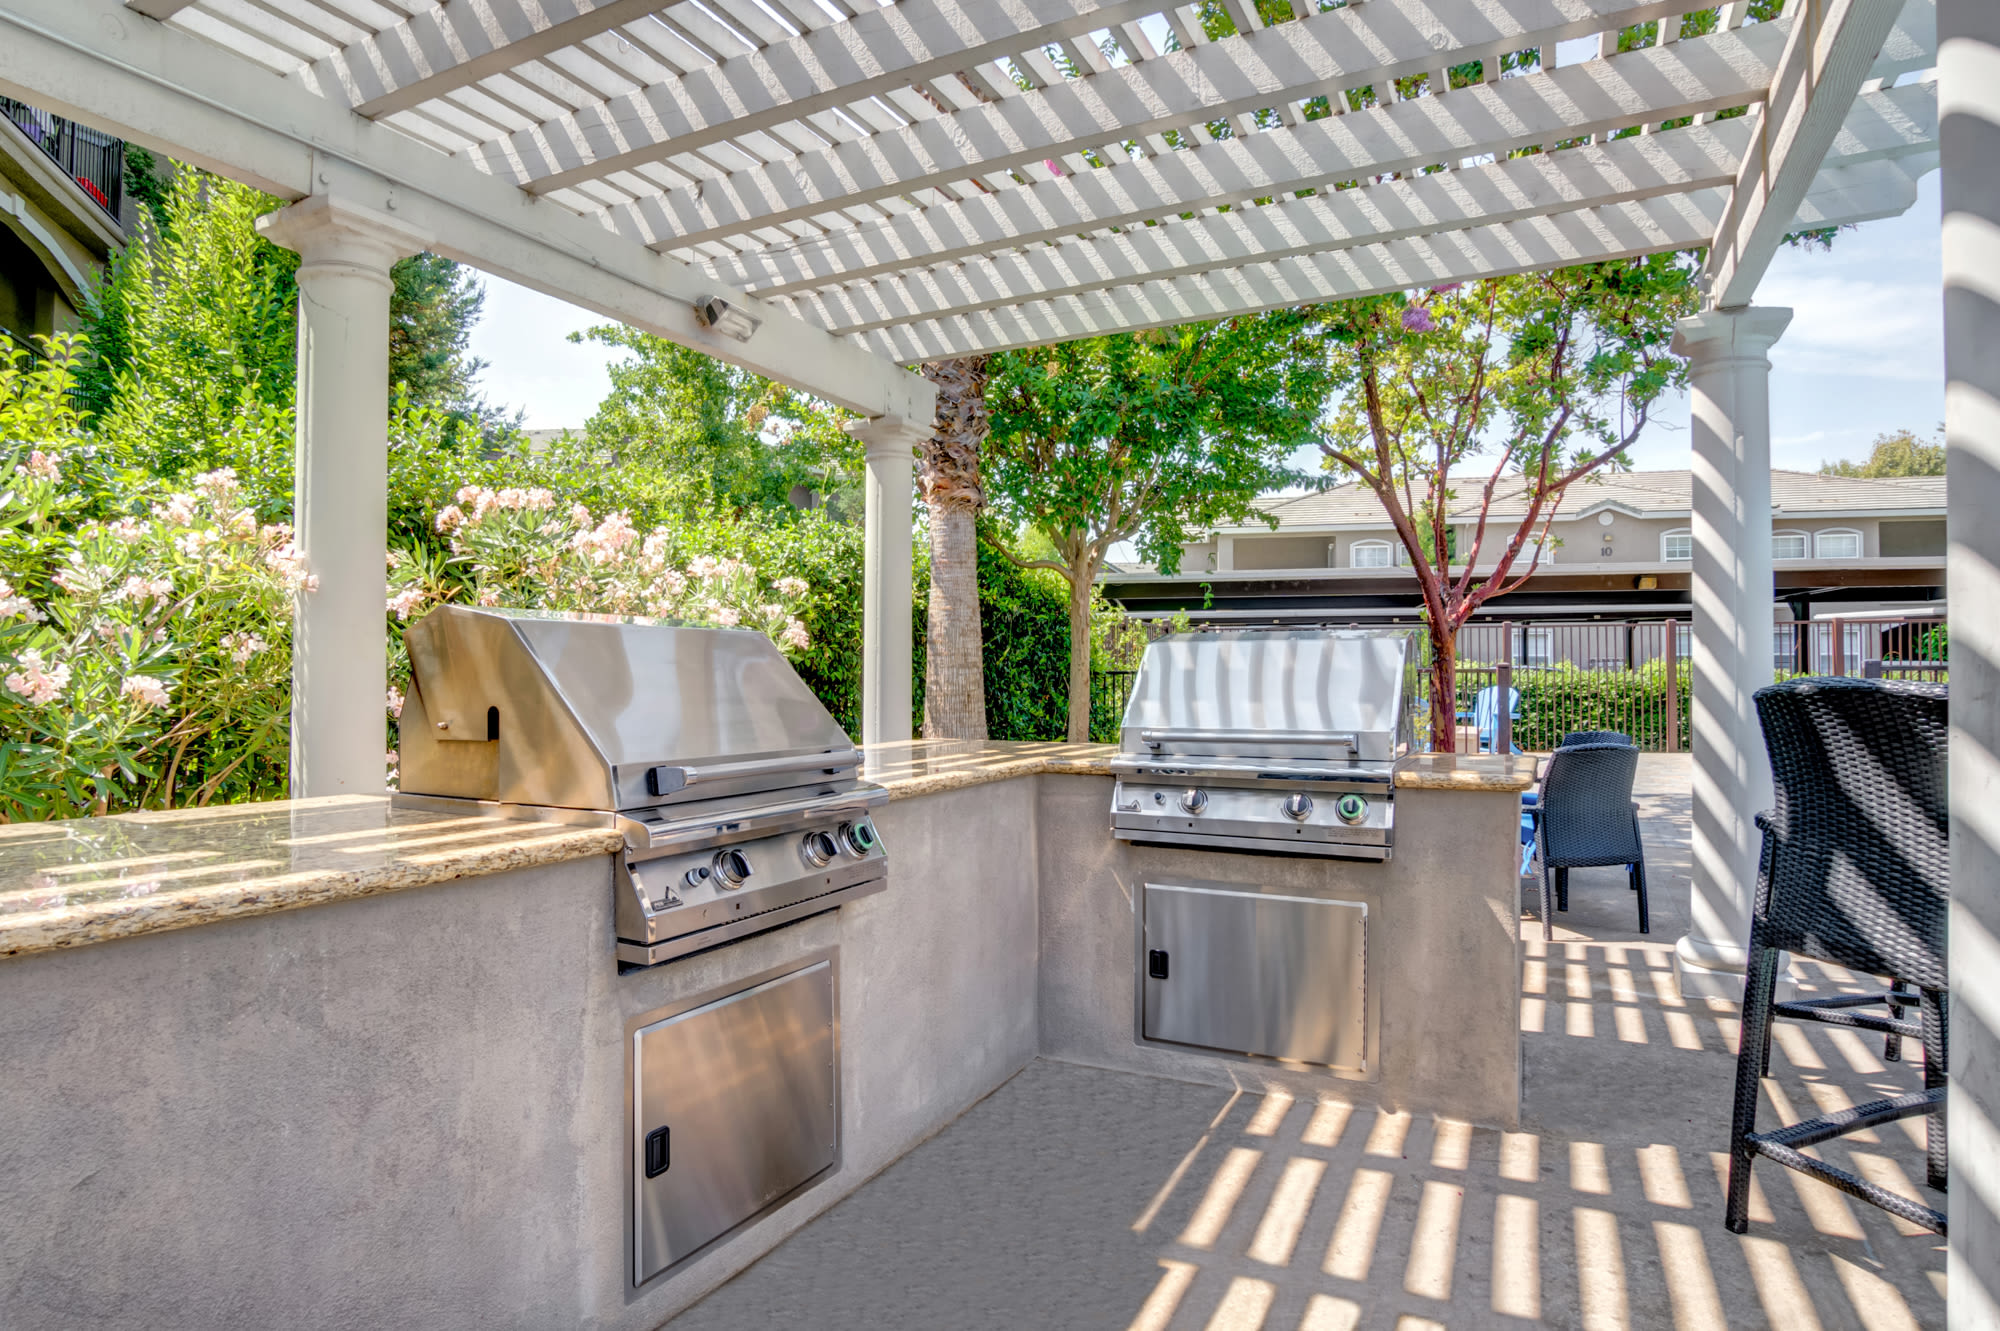 Poolside Gazebo at Hawthorn Village Apartments in Napa